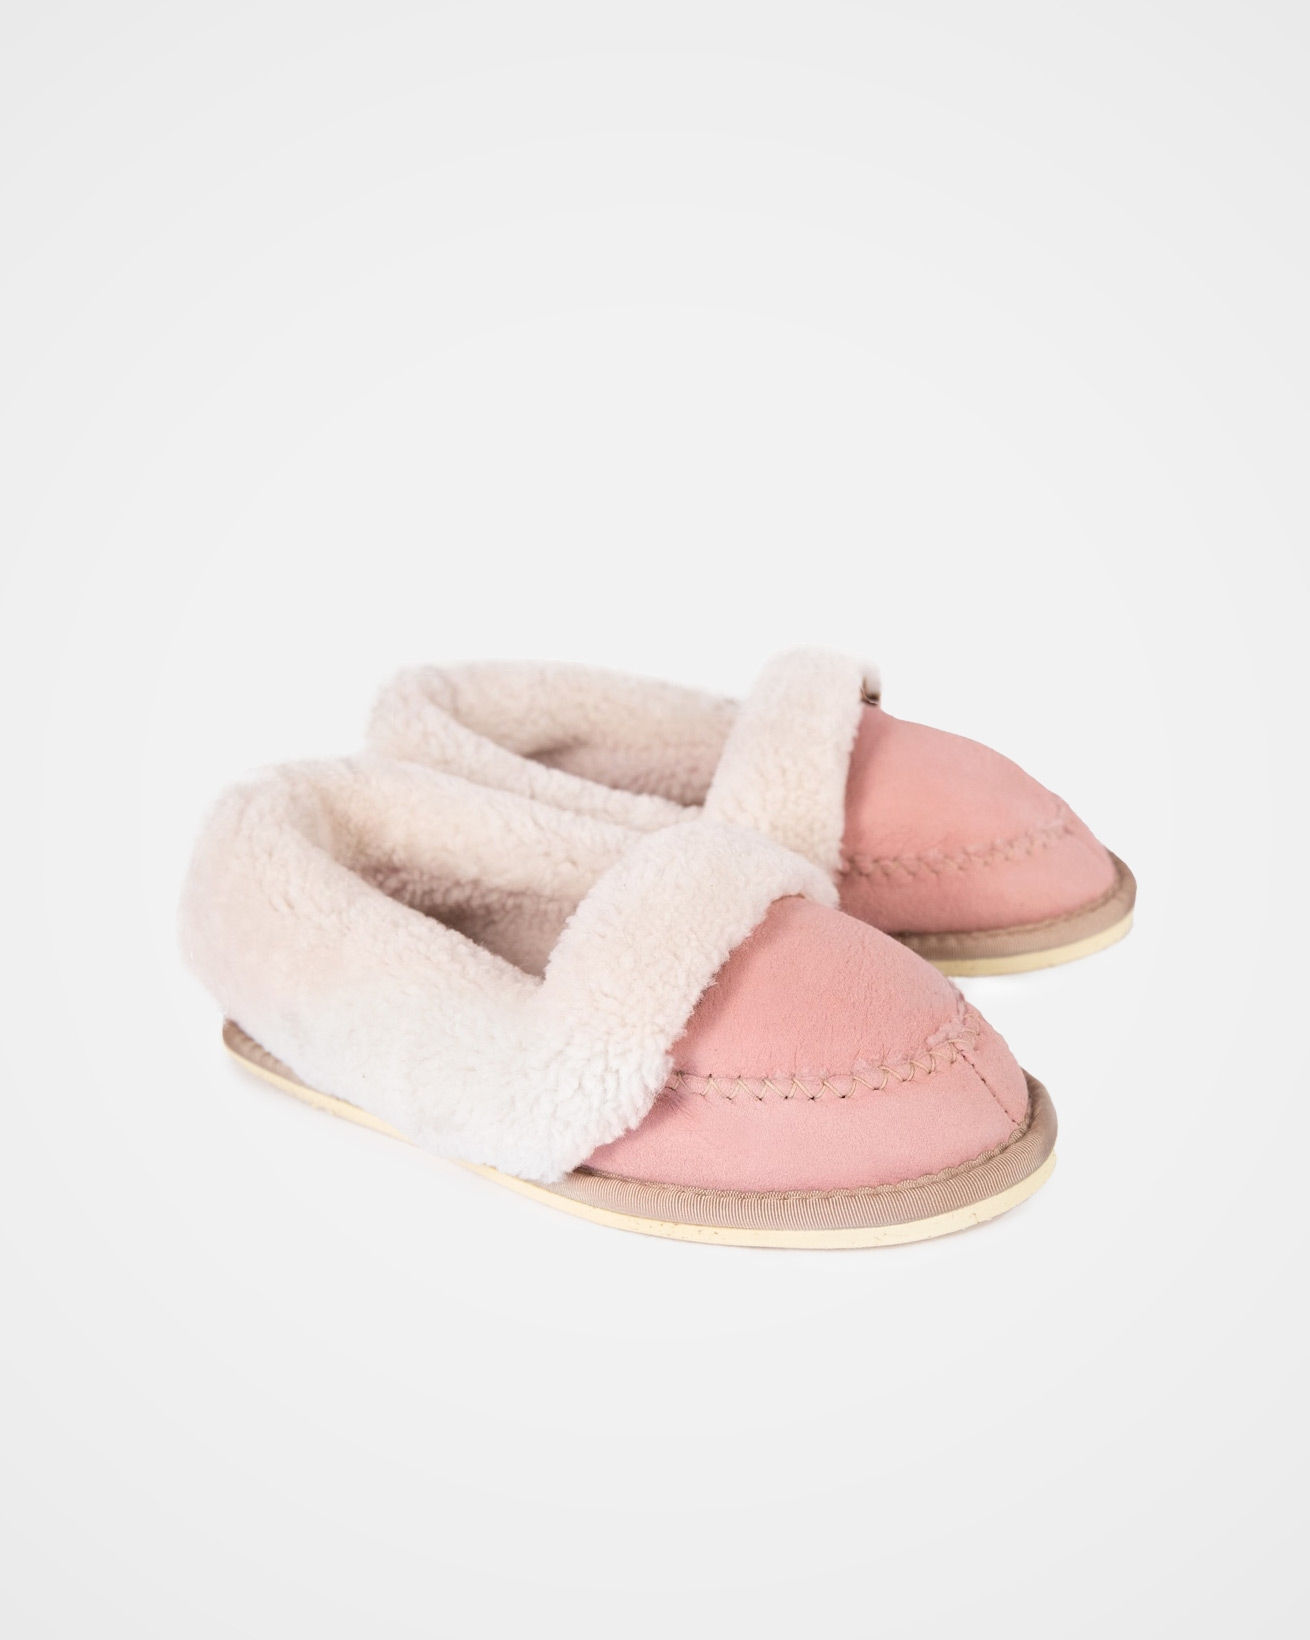 Halona Slippers - Size 7 - Light Pink - 2029